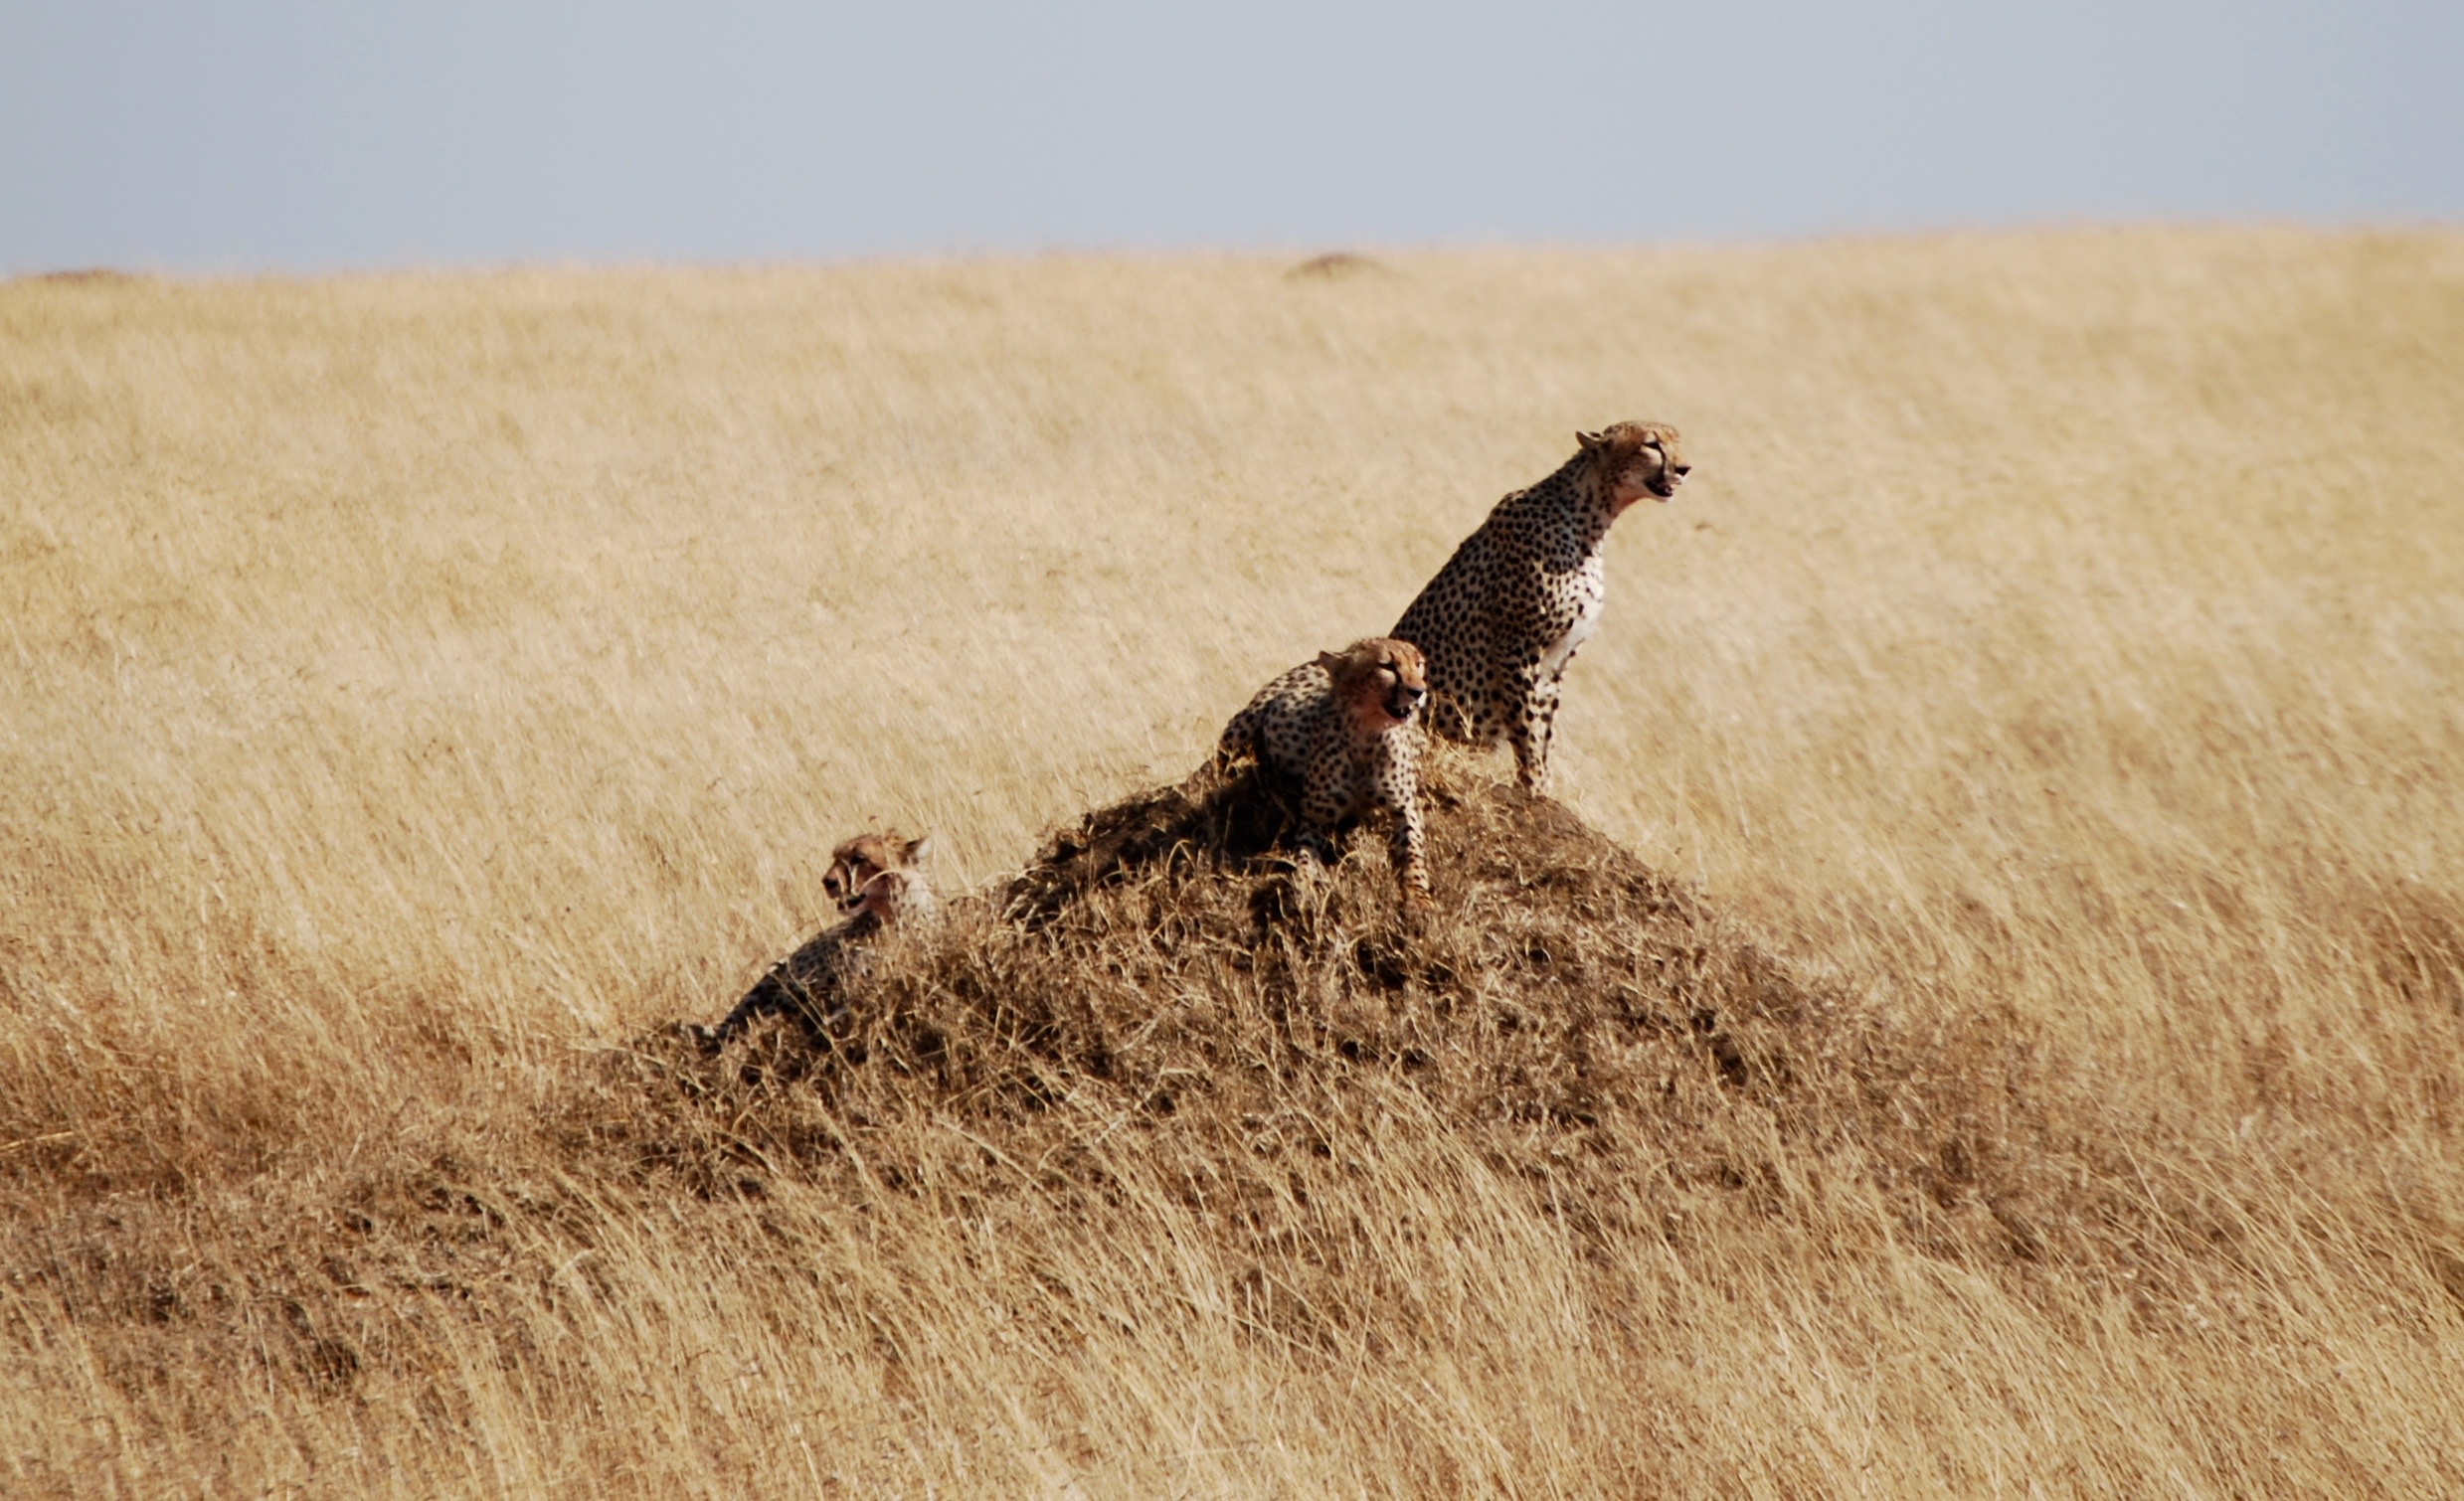 This foursome had just hunted a gazelle in the Serengeti. Their mouths are bloody!